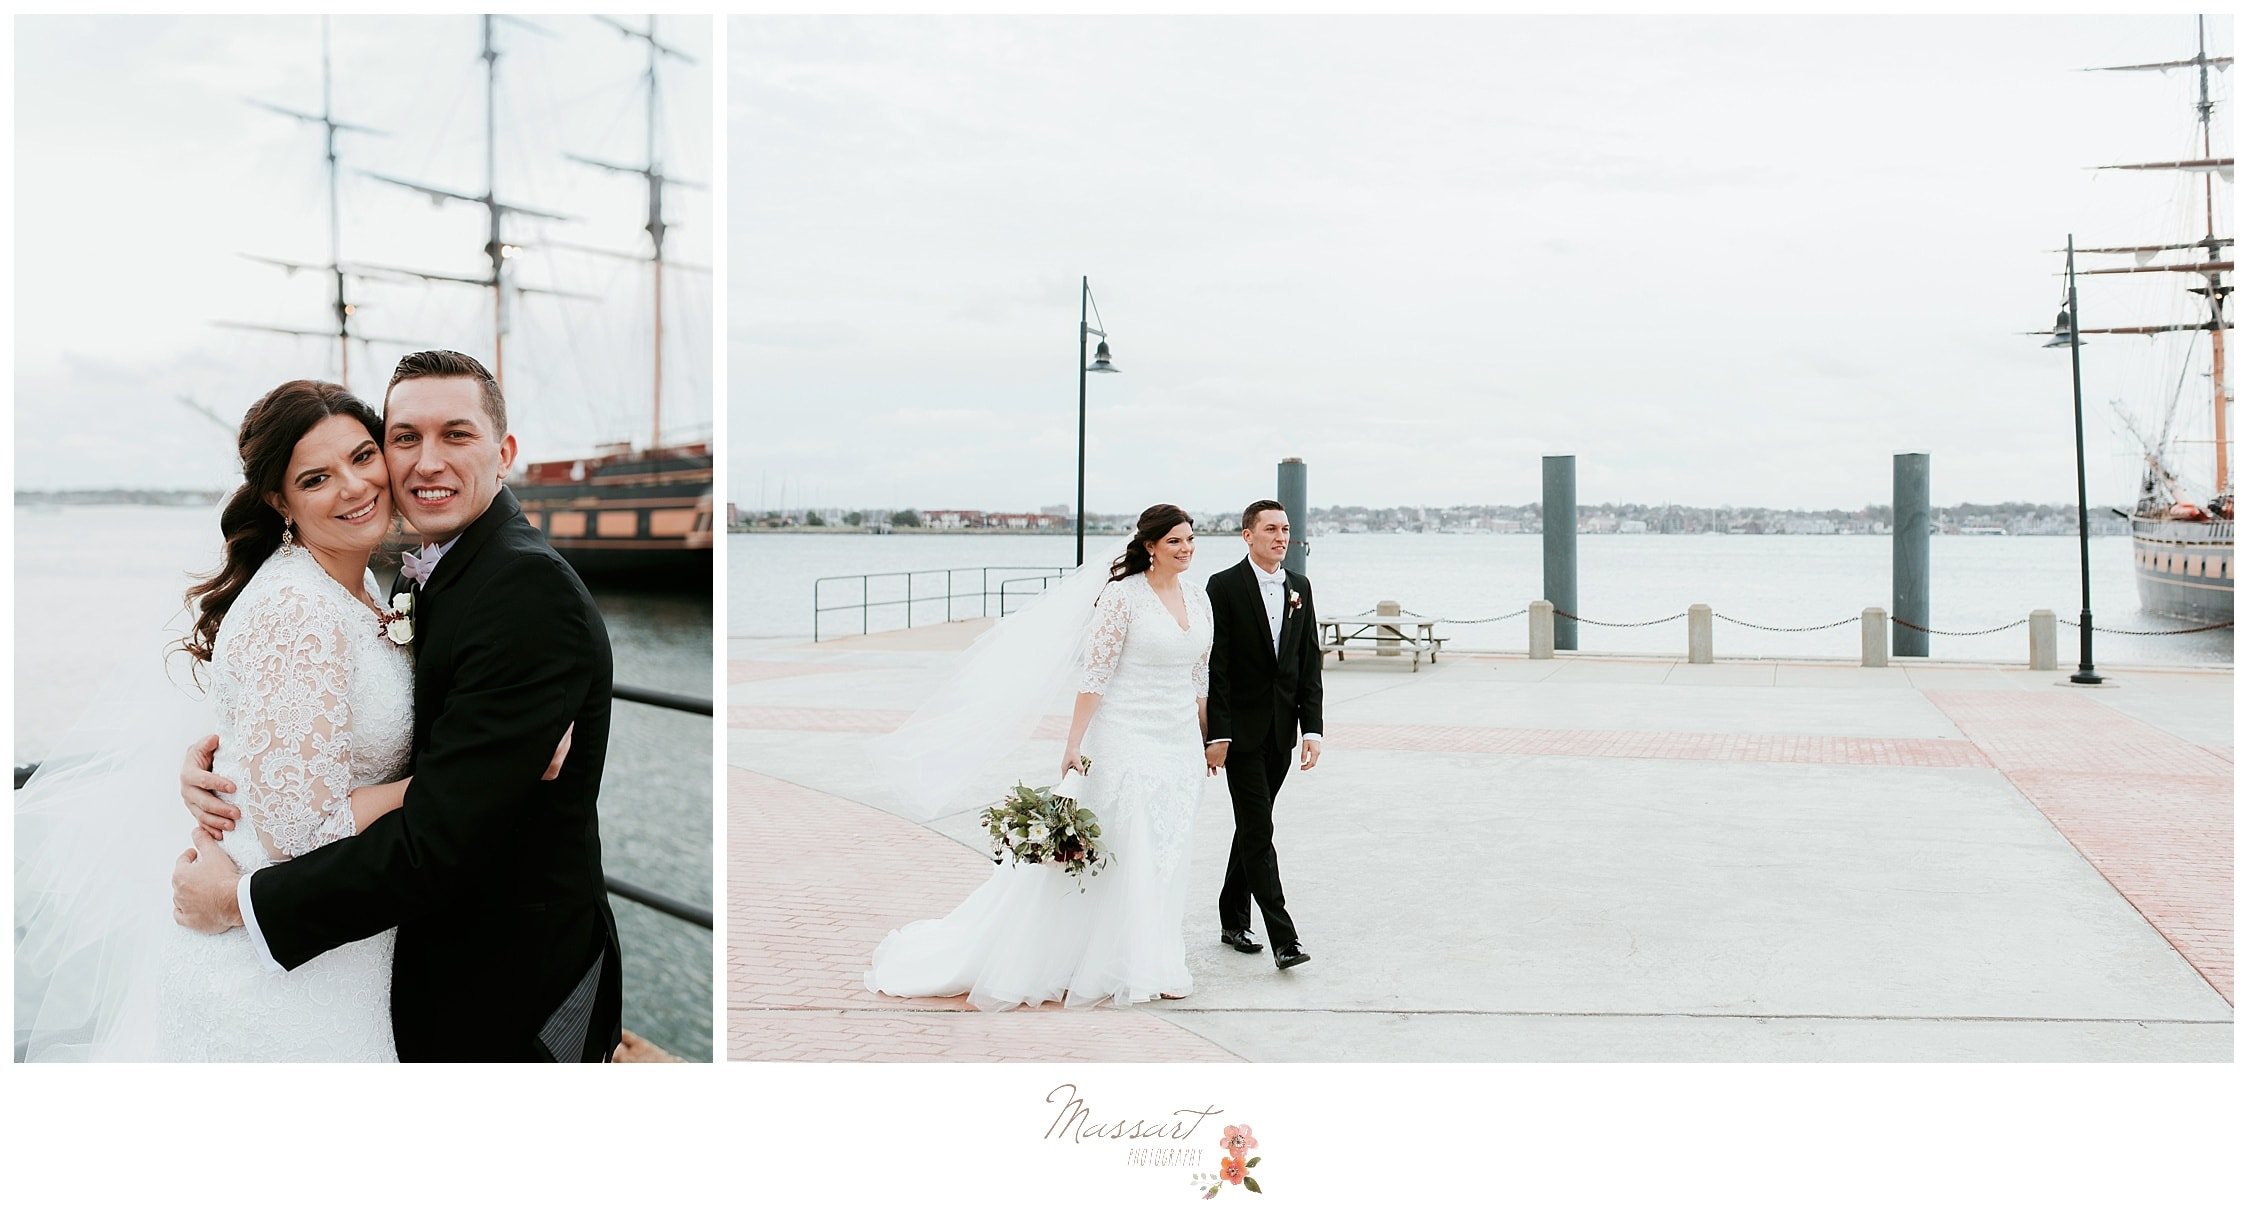 Wedding photos by massart photography of warwick RI of wedding couple in front of tall ship at fort adams in newport